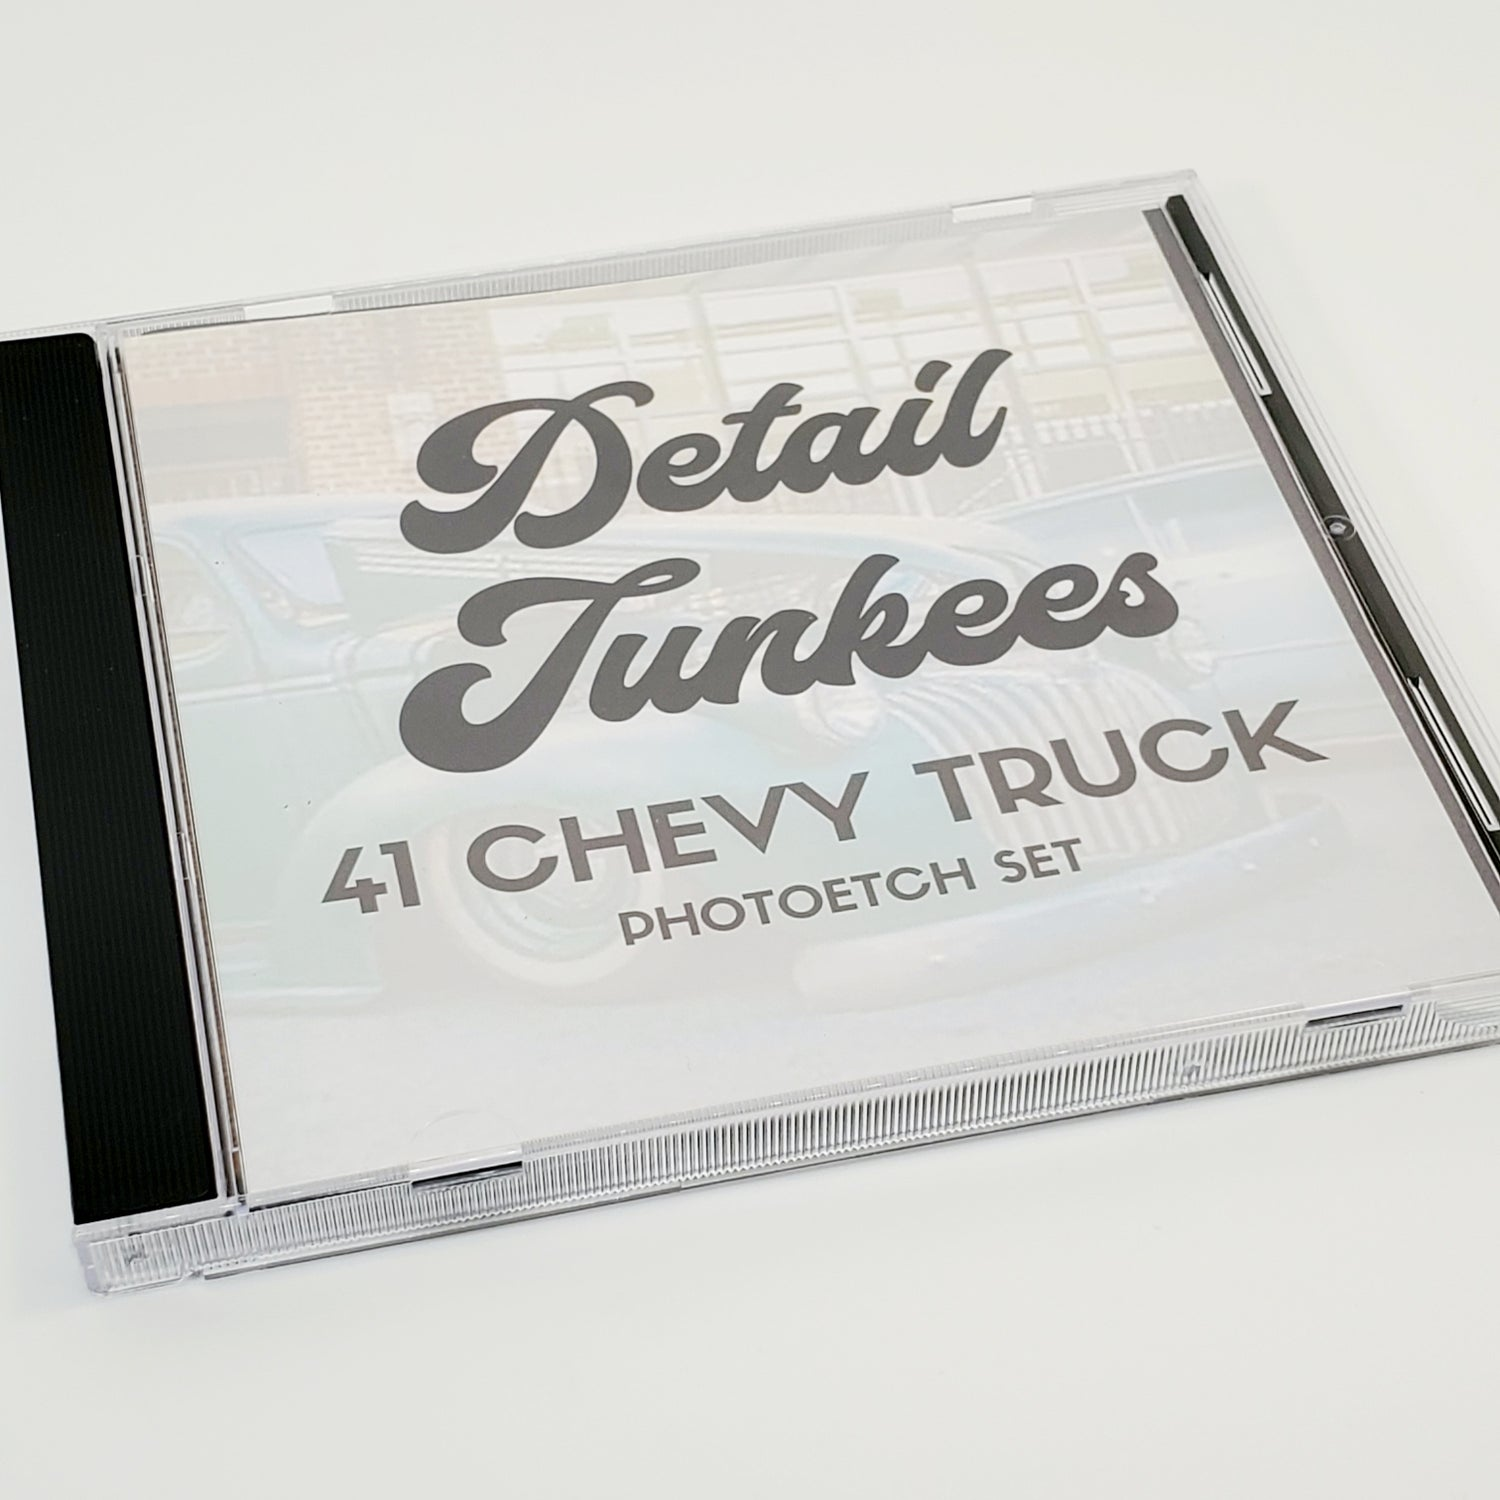 Image of 41 Chevy Truck Set